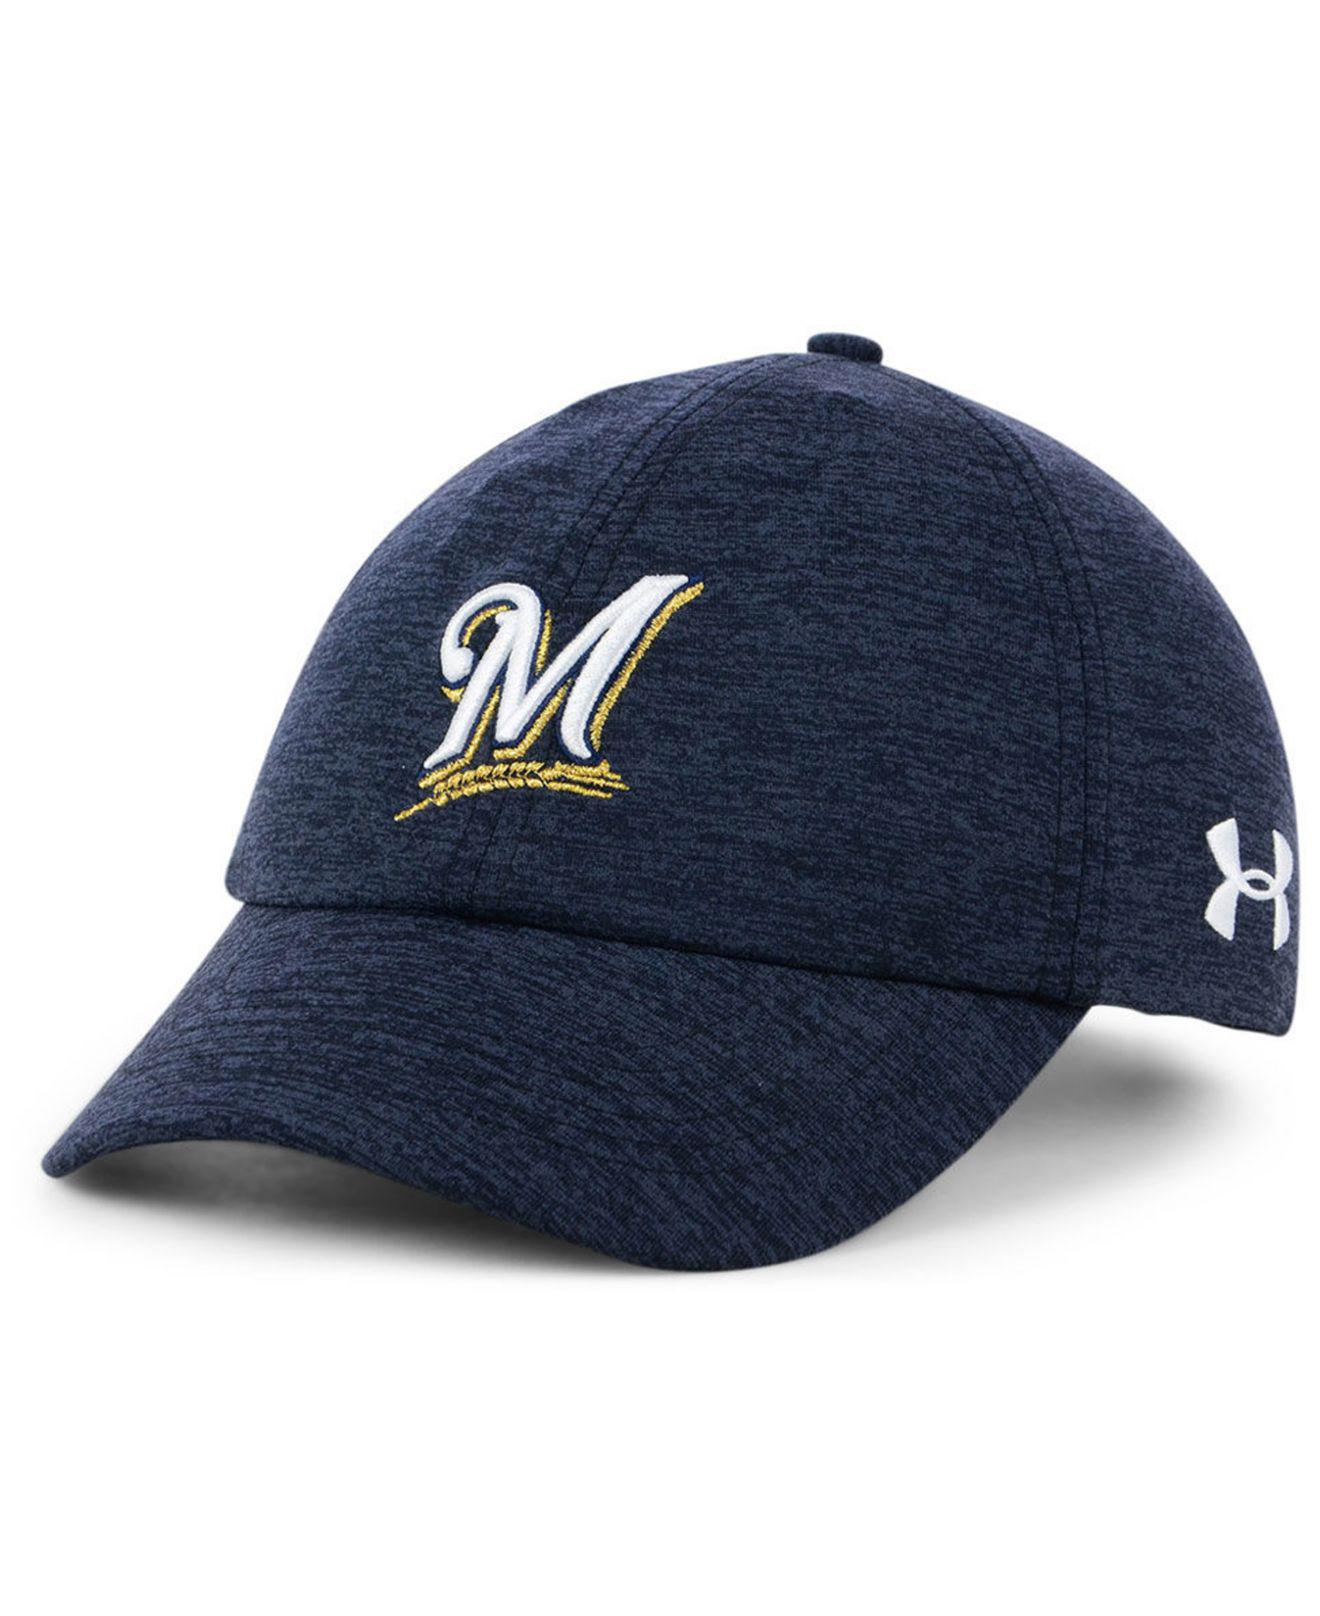 0e352464ece Lyst - Under Armour Milwaukee Brewers Renegade Twist Cap in Blue